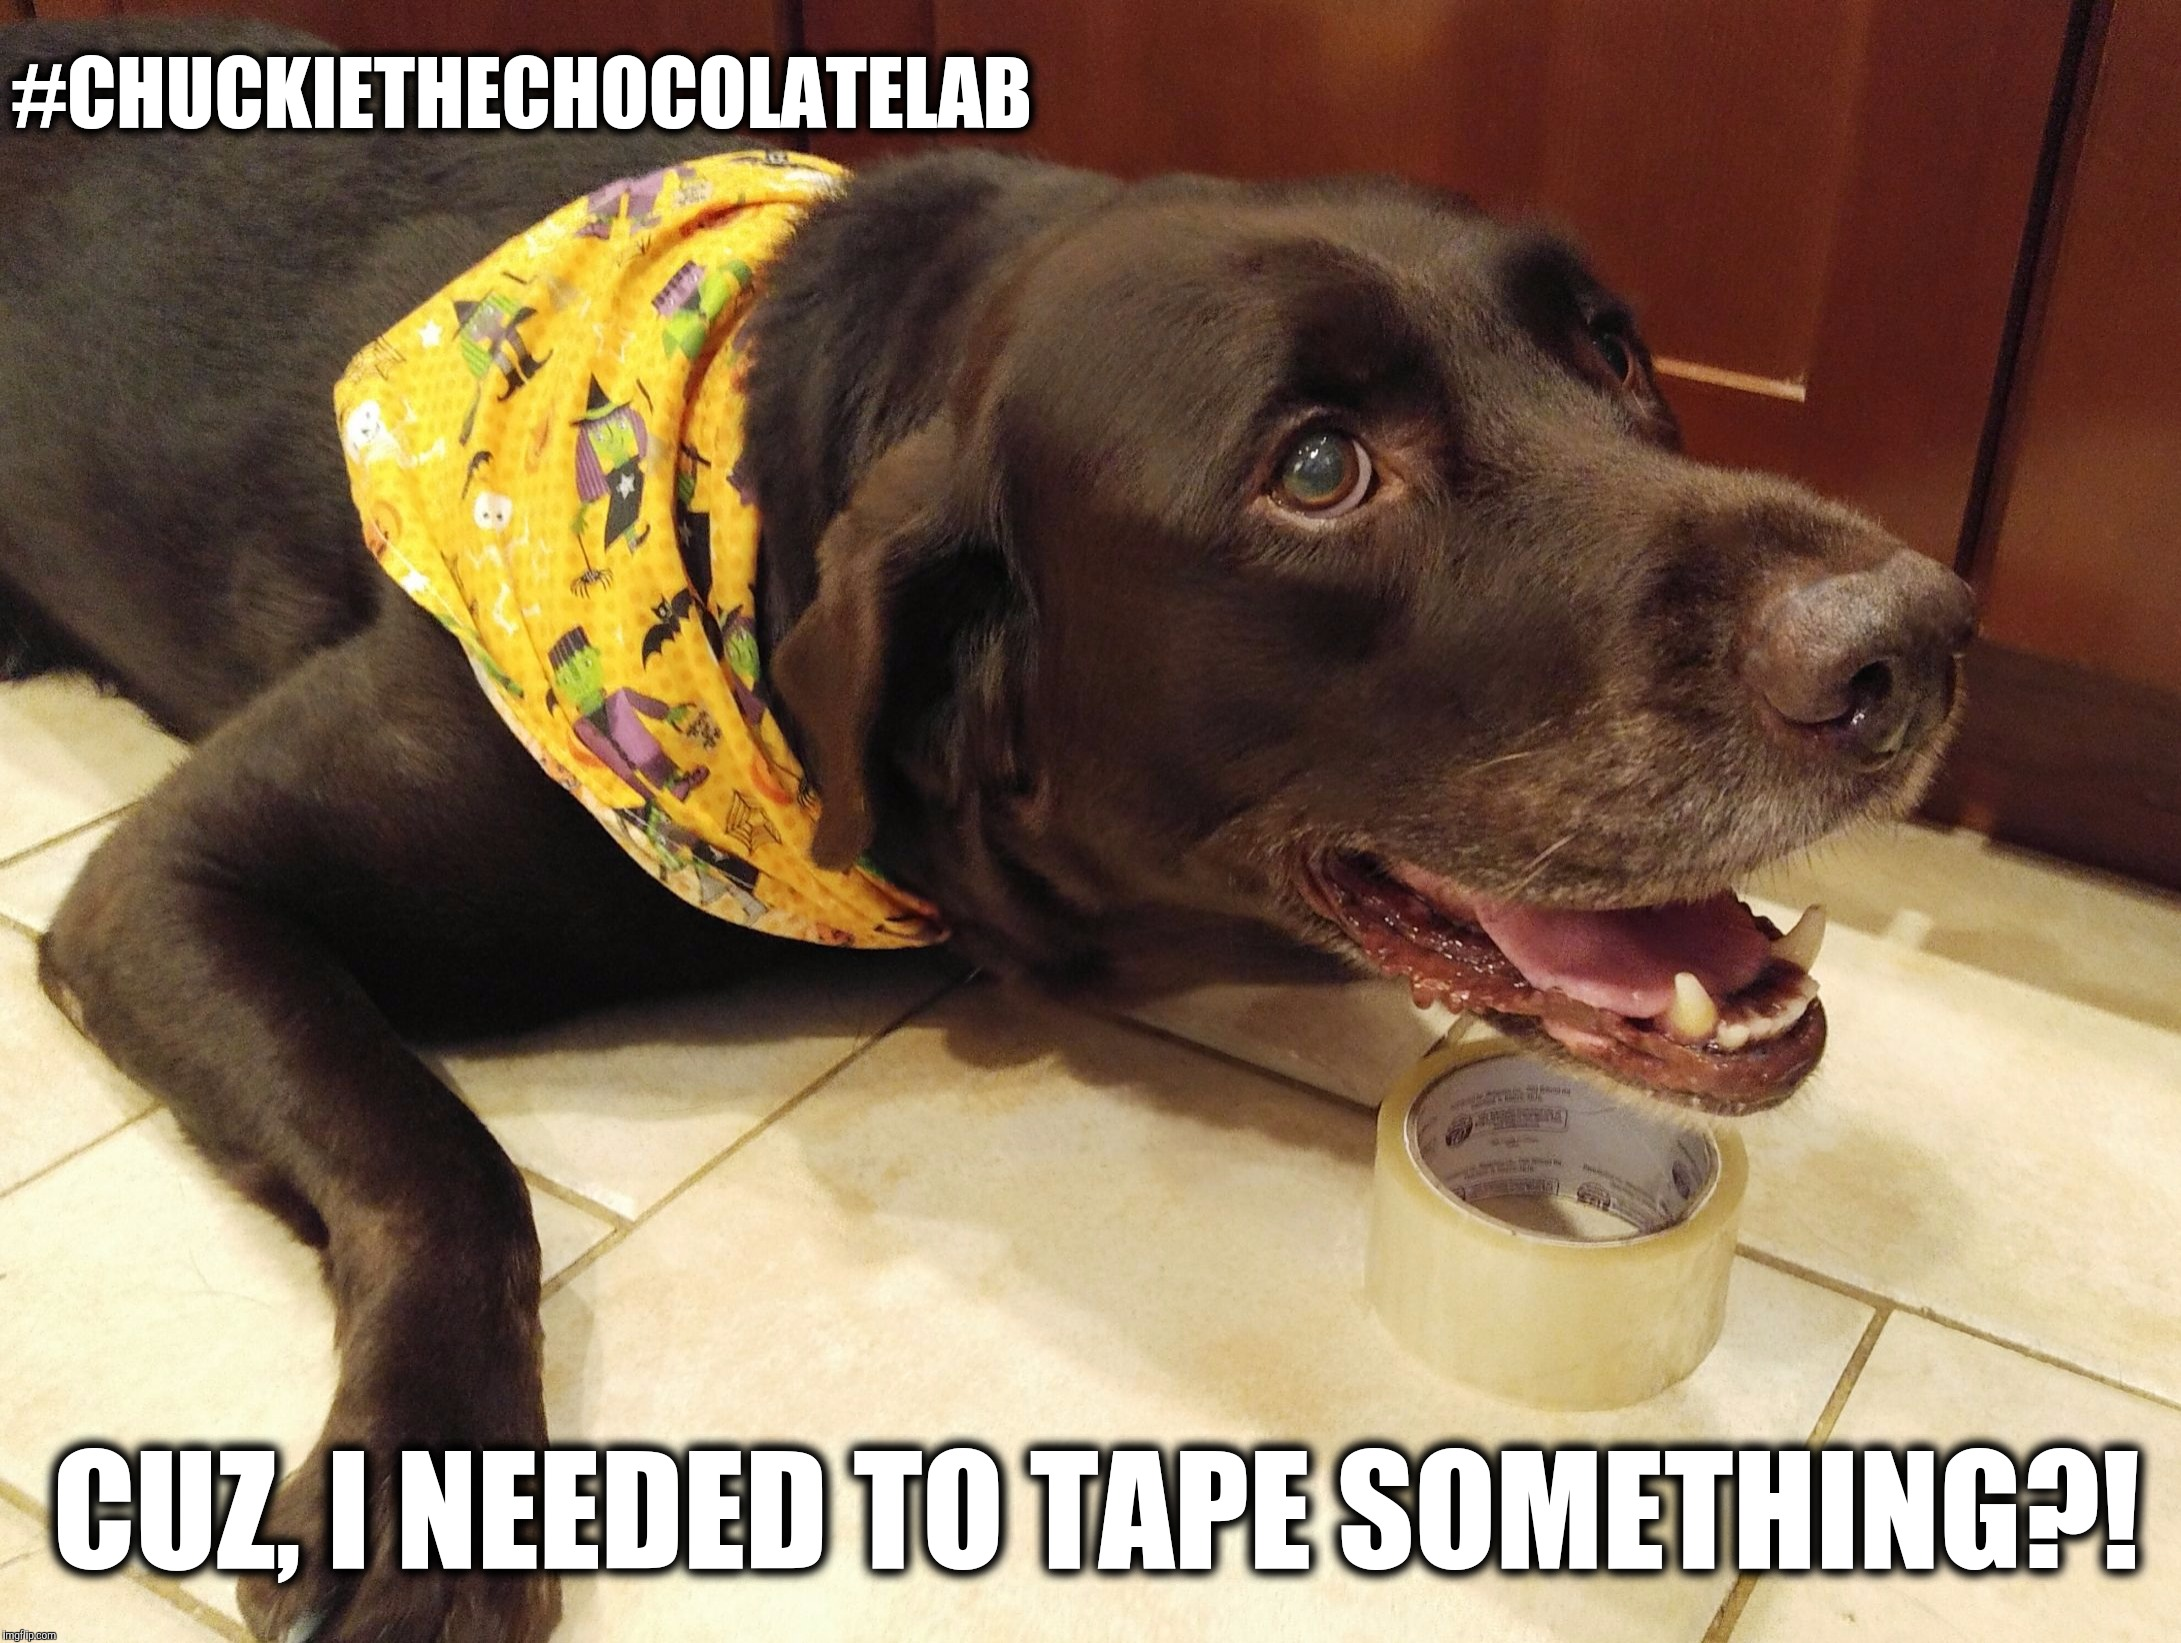 I needed this tape  | #CHUCKIETHECHOCOLATELAB CUZ, I NEEDED TO TAPE SOMETHING?! | image tagged in chuckie the chocolate lab,funny,memes,dog,labrador,tape thief | made w/ Imgflip meme maker